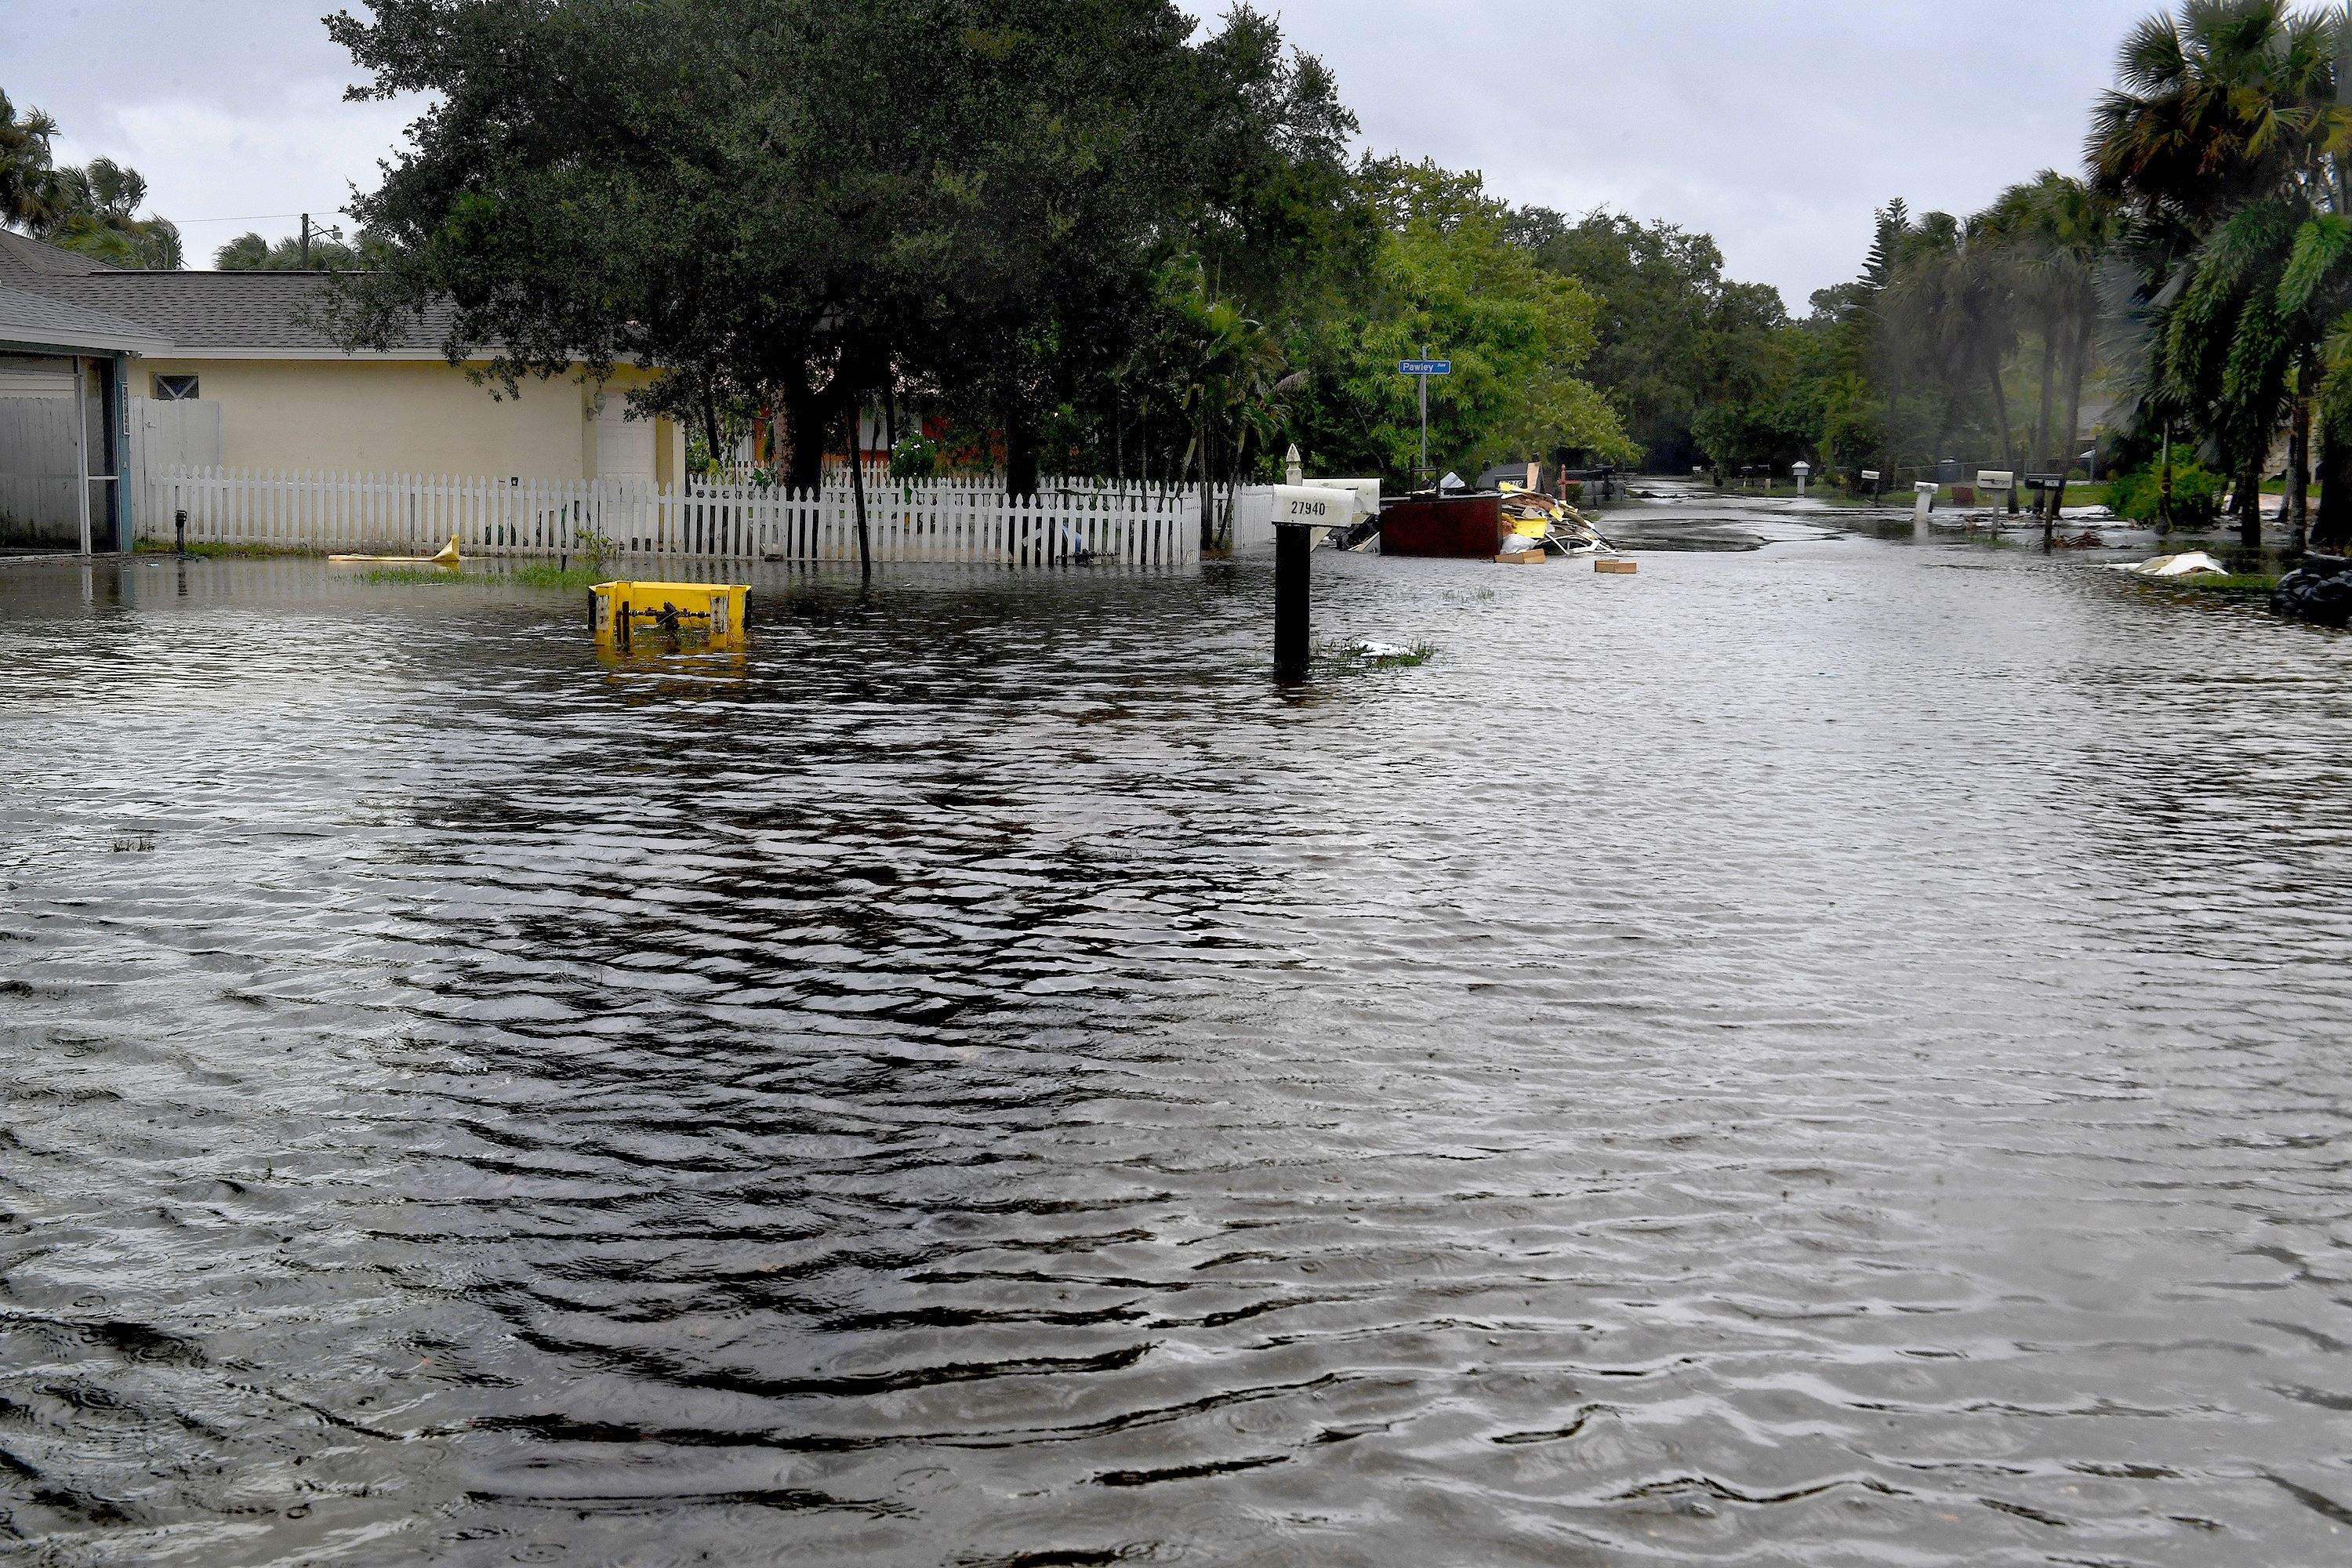 Many streets in the Bonita Springs, Florida, area were flooded by mid-morning on Sunday. MUST CREDIT: Washington Post photo by Michael S. Williamson